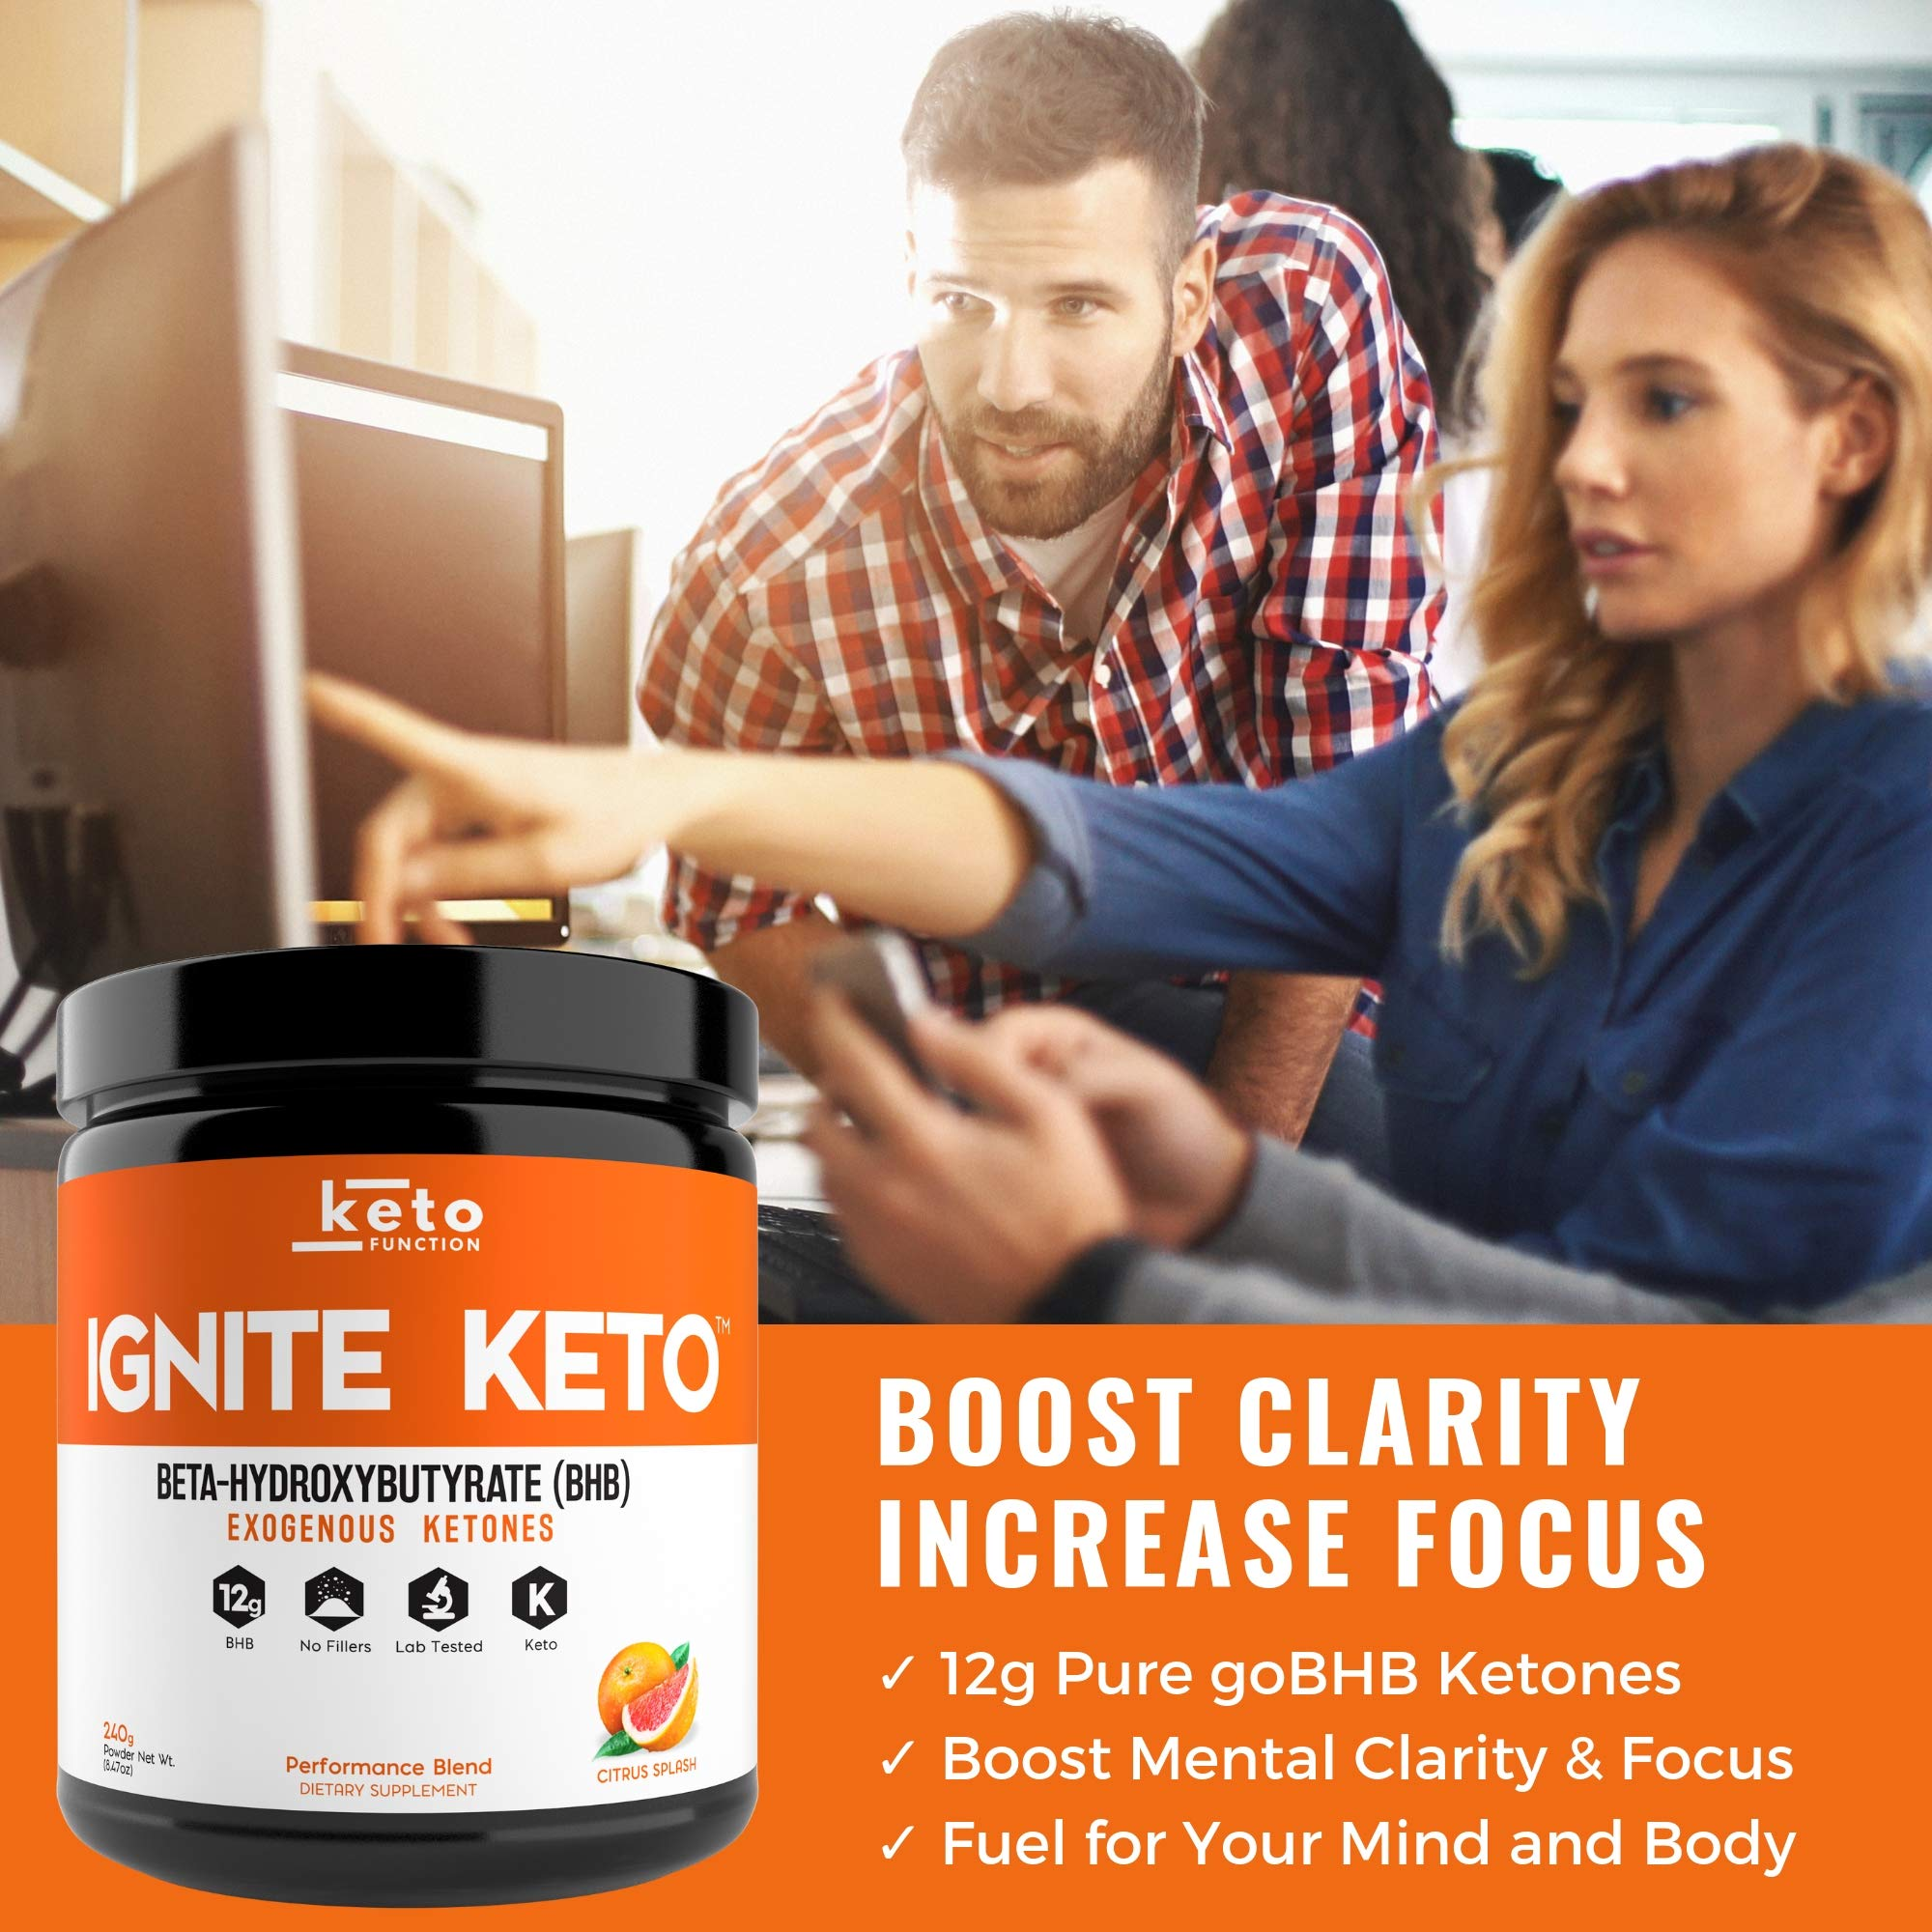 IGNITE KETO Drink - Instant Exogenous Ketones Supplement - 12g Pure BHB Salts - Fuel Ketosis, Energy, and Focus - Best goBHB Ketone Drink Powder Mix - Perfect for Low Carb Keto Diet by Keto Function (Image #4)